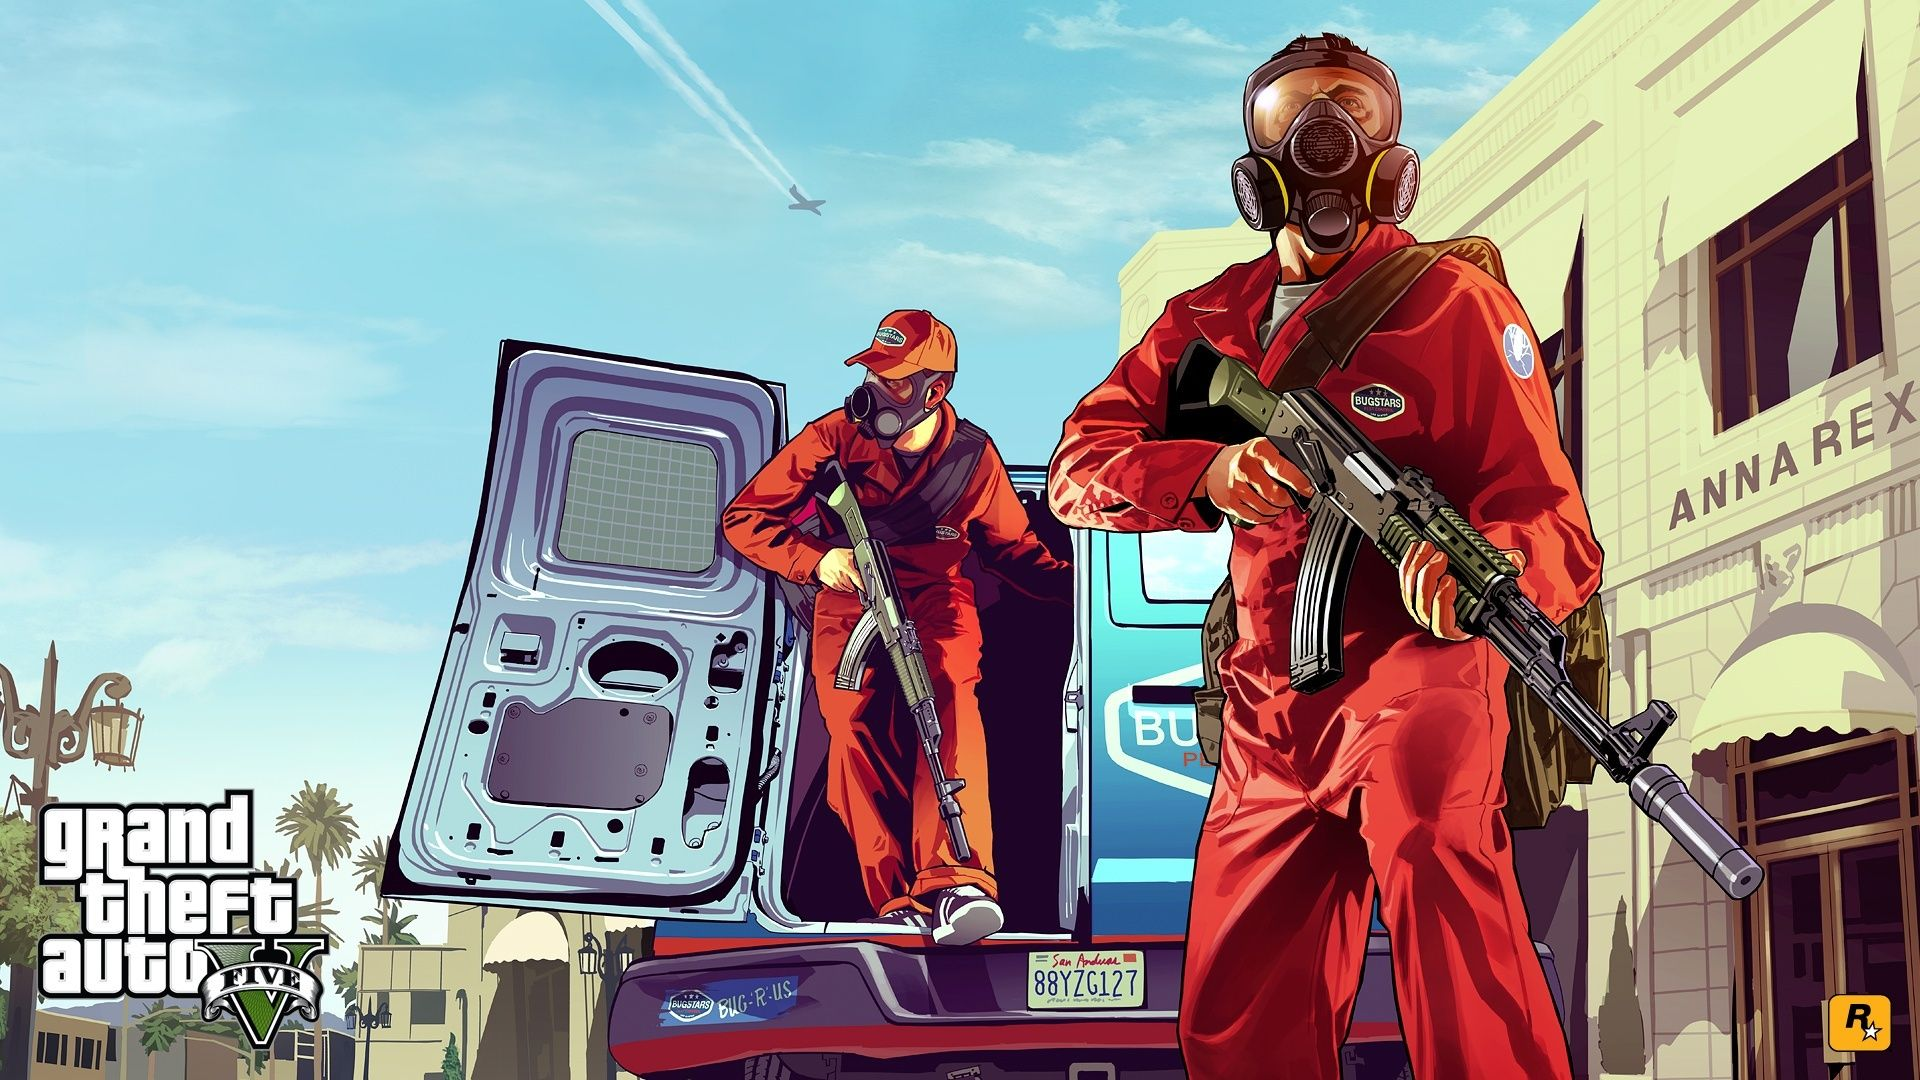 Fondos De Escritorio Gamers Full Hd Gta